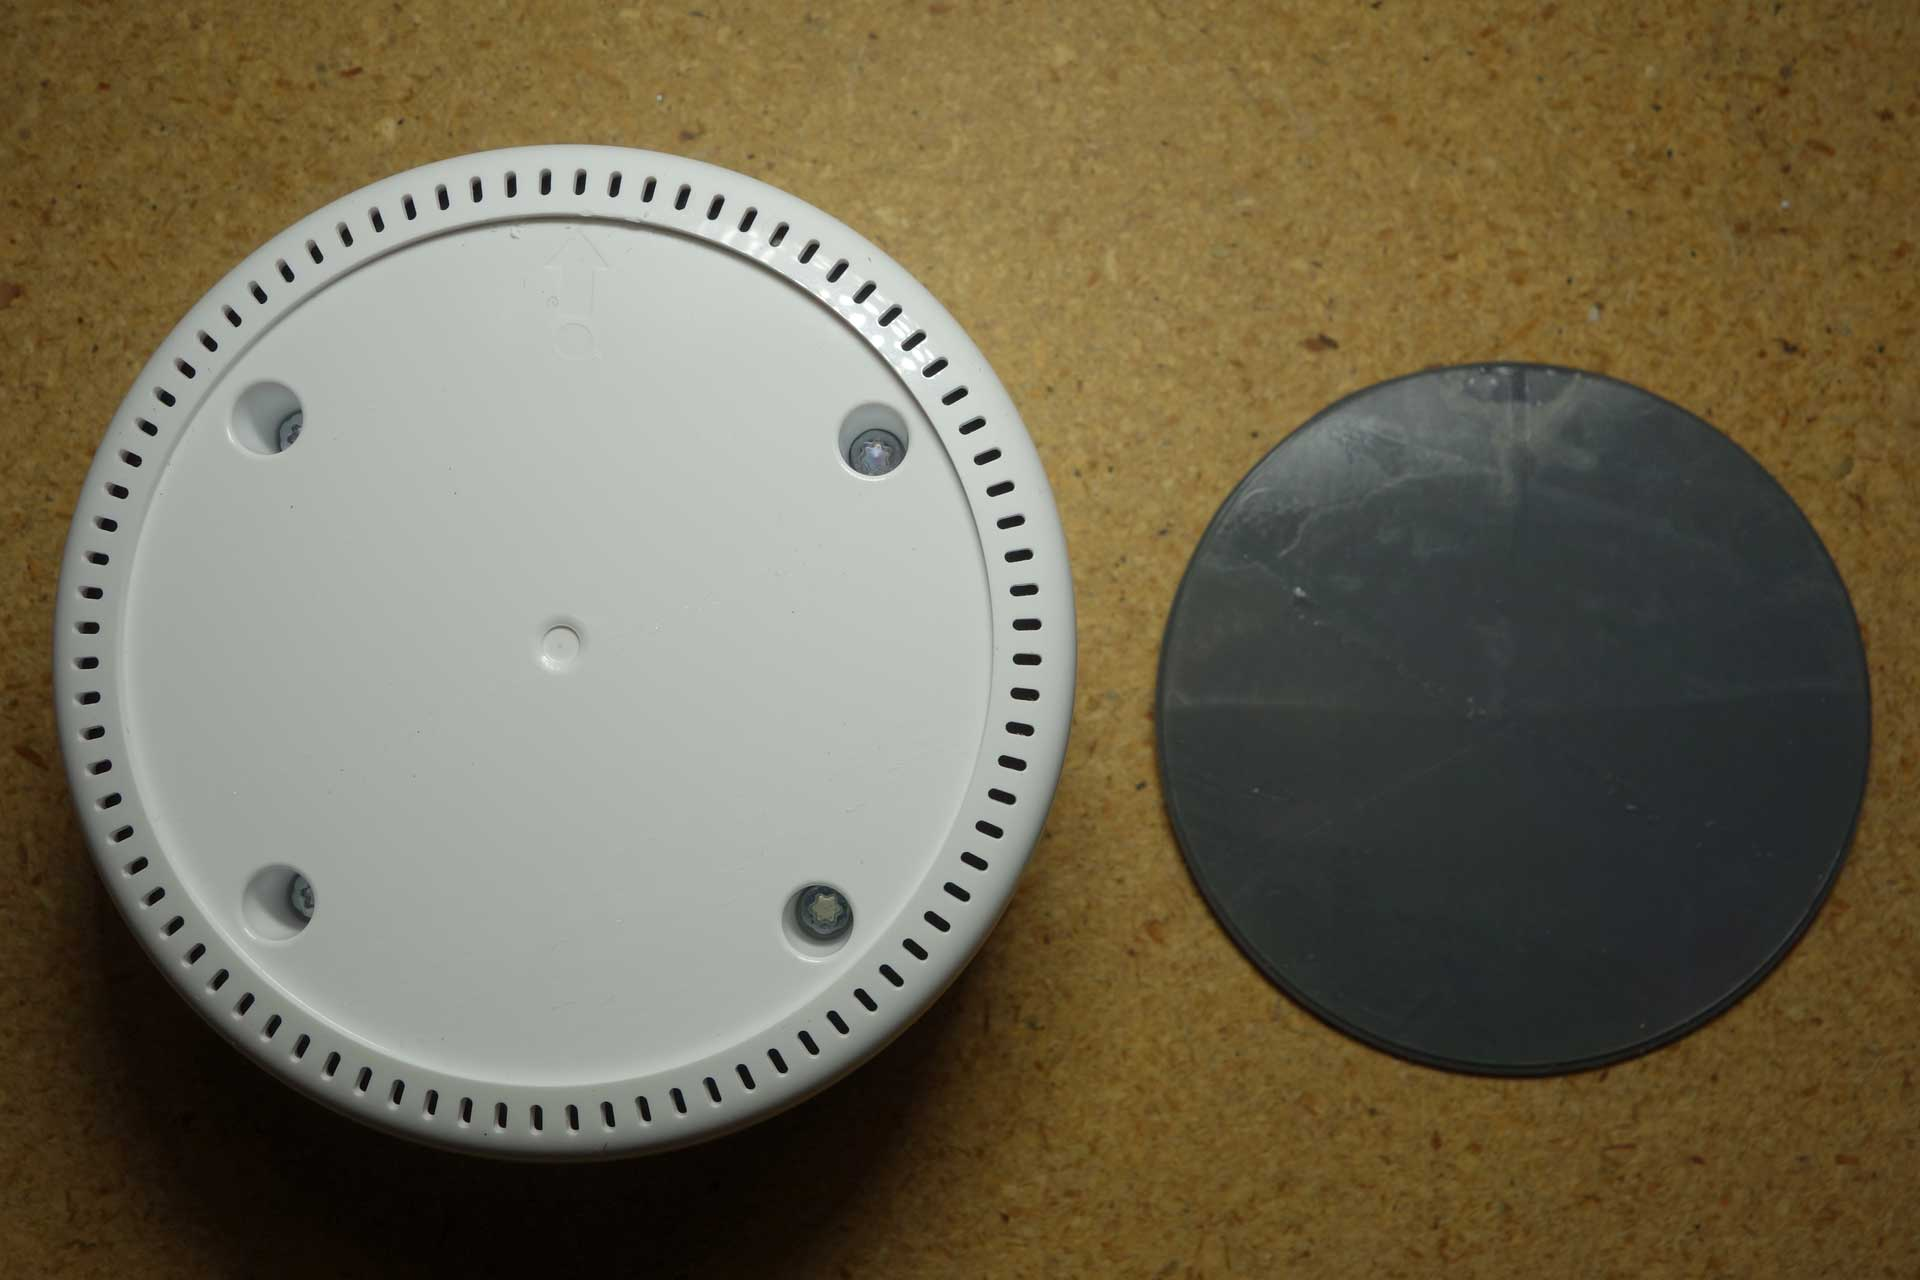 c082117c2feb5c First, you need to open the Echo Dot. This is done peeling away the rubber  bottom which is attached with adhesive. The adhesive on my Echo Dot  remained ...